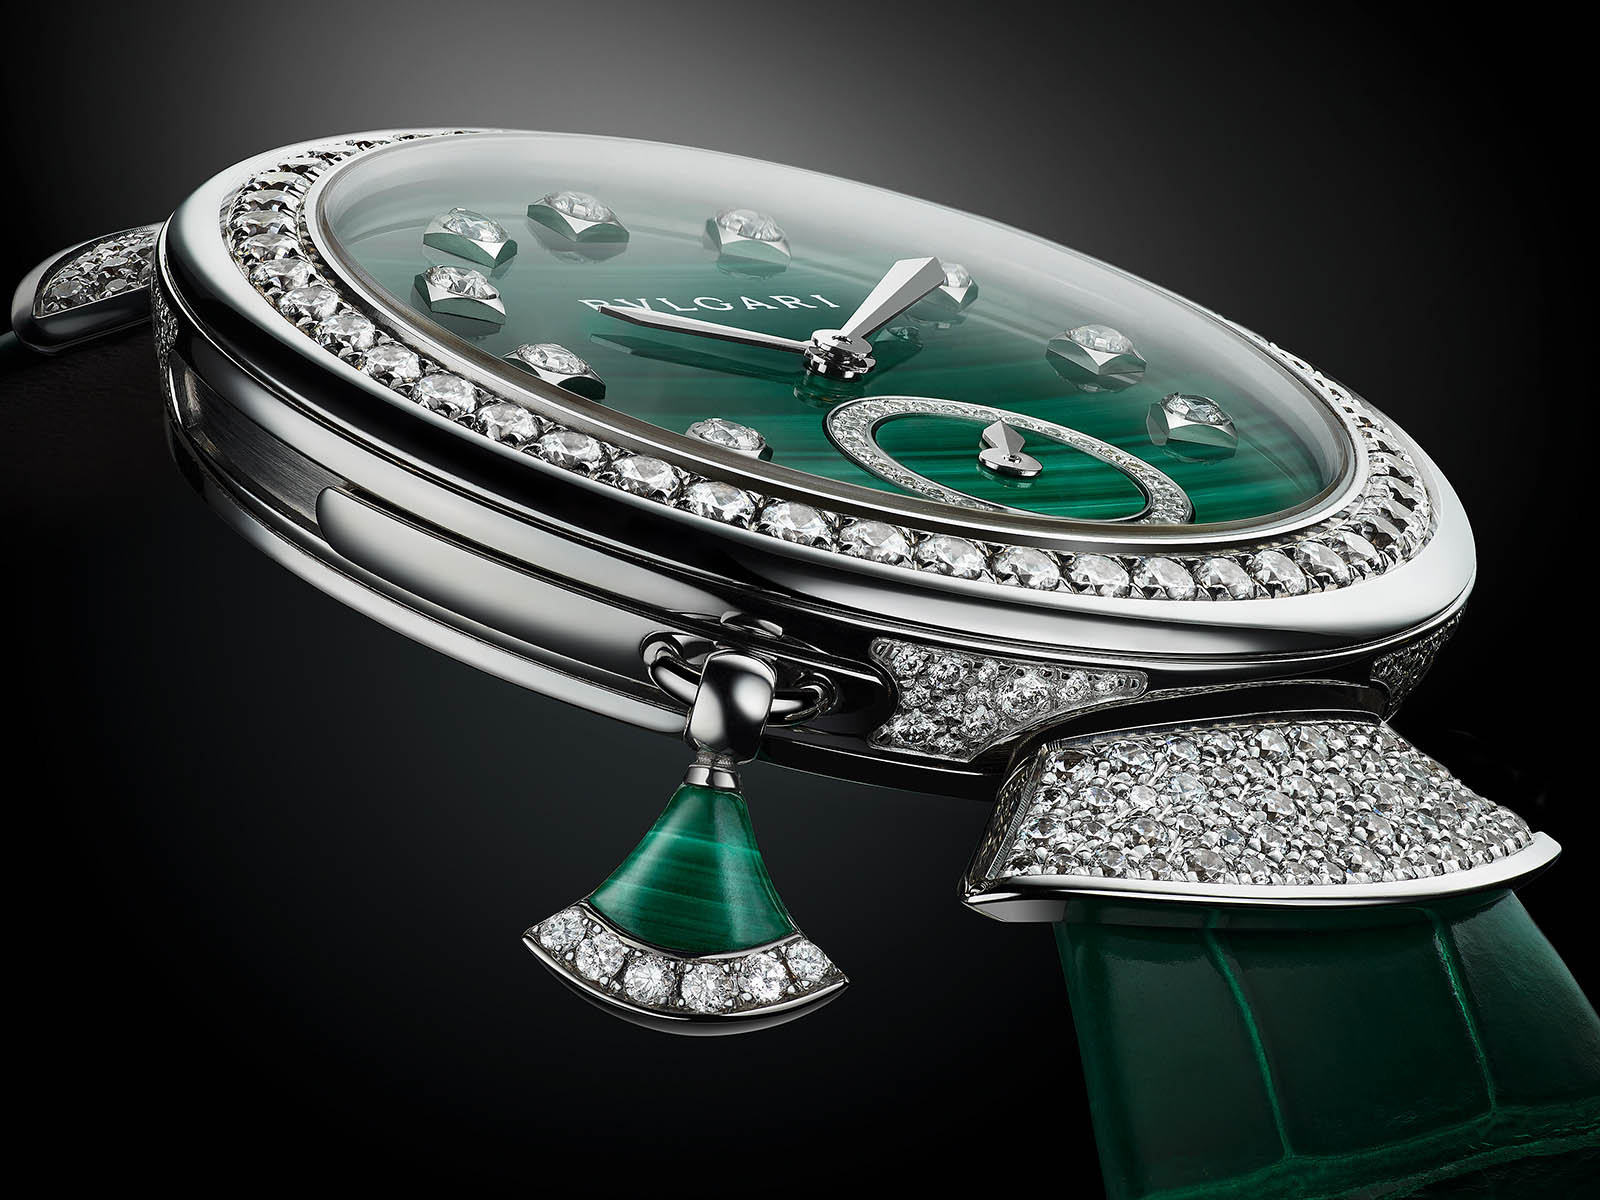 103282-bulgari-divas-dream-finissima-minute-repeater-malachite-5.jpg